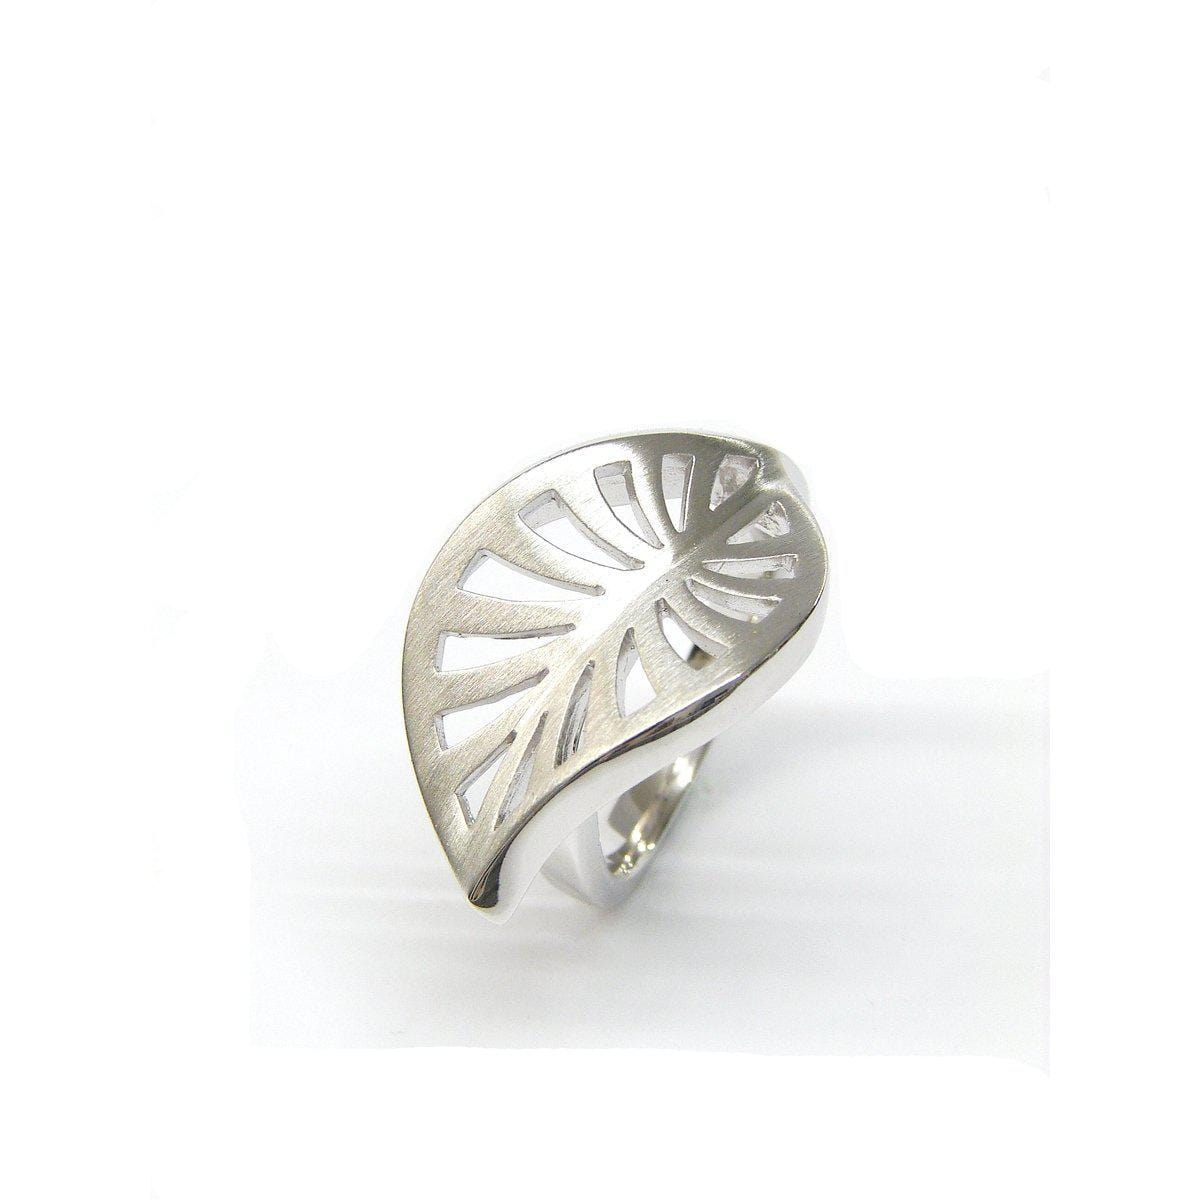 Sterling Silver Ring - 44/84812-Breuning-Renee Taylor Gallery